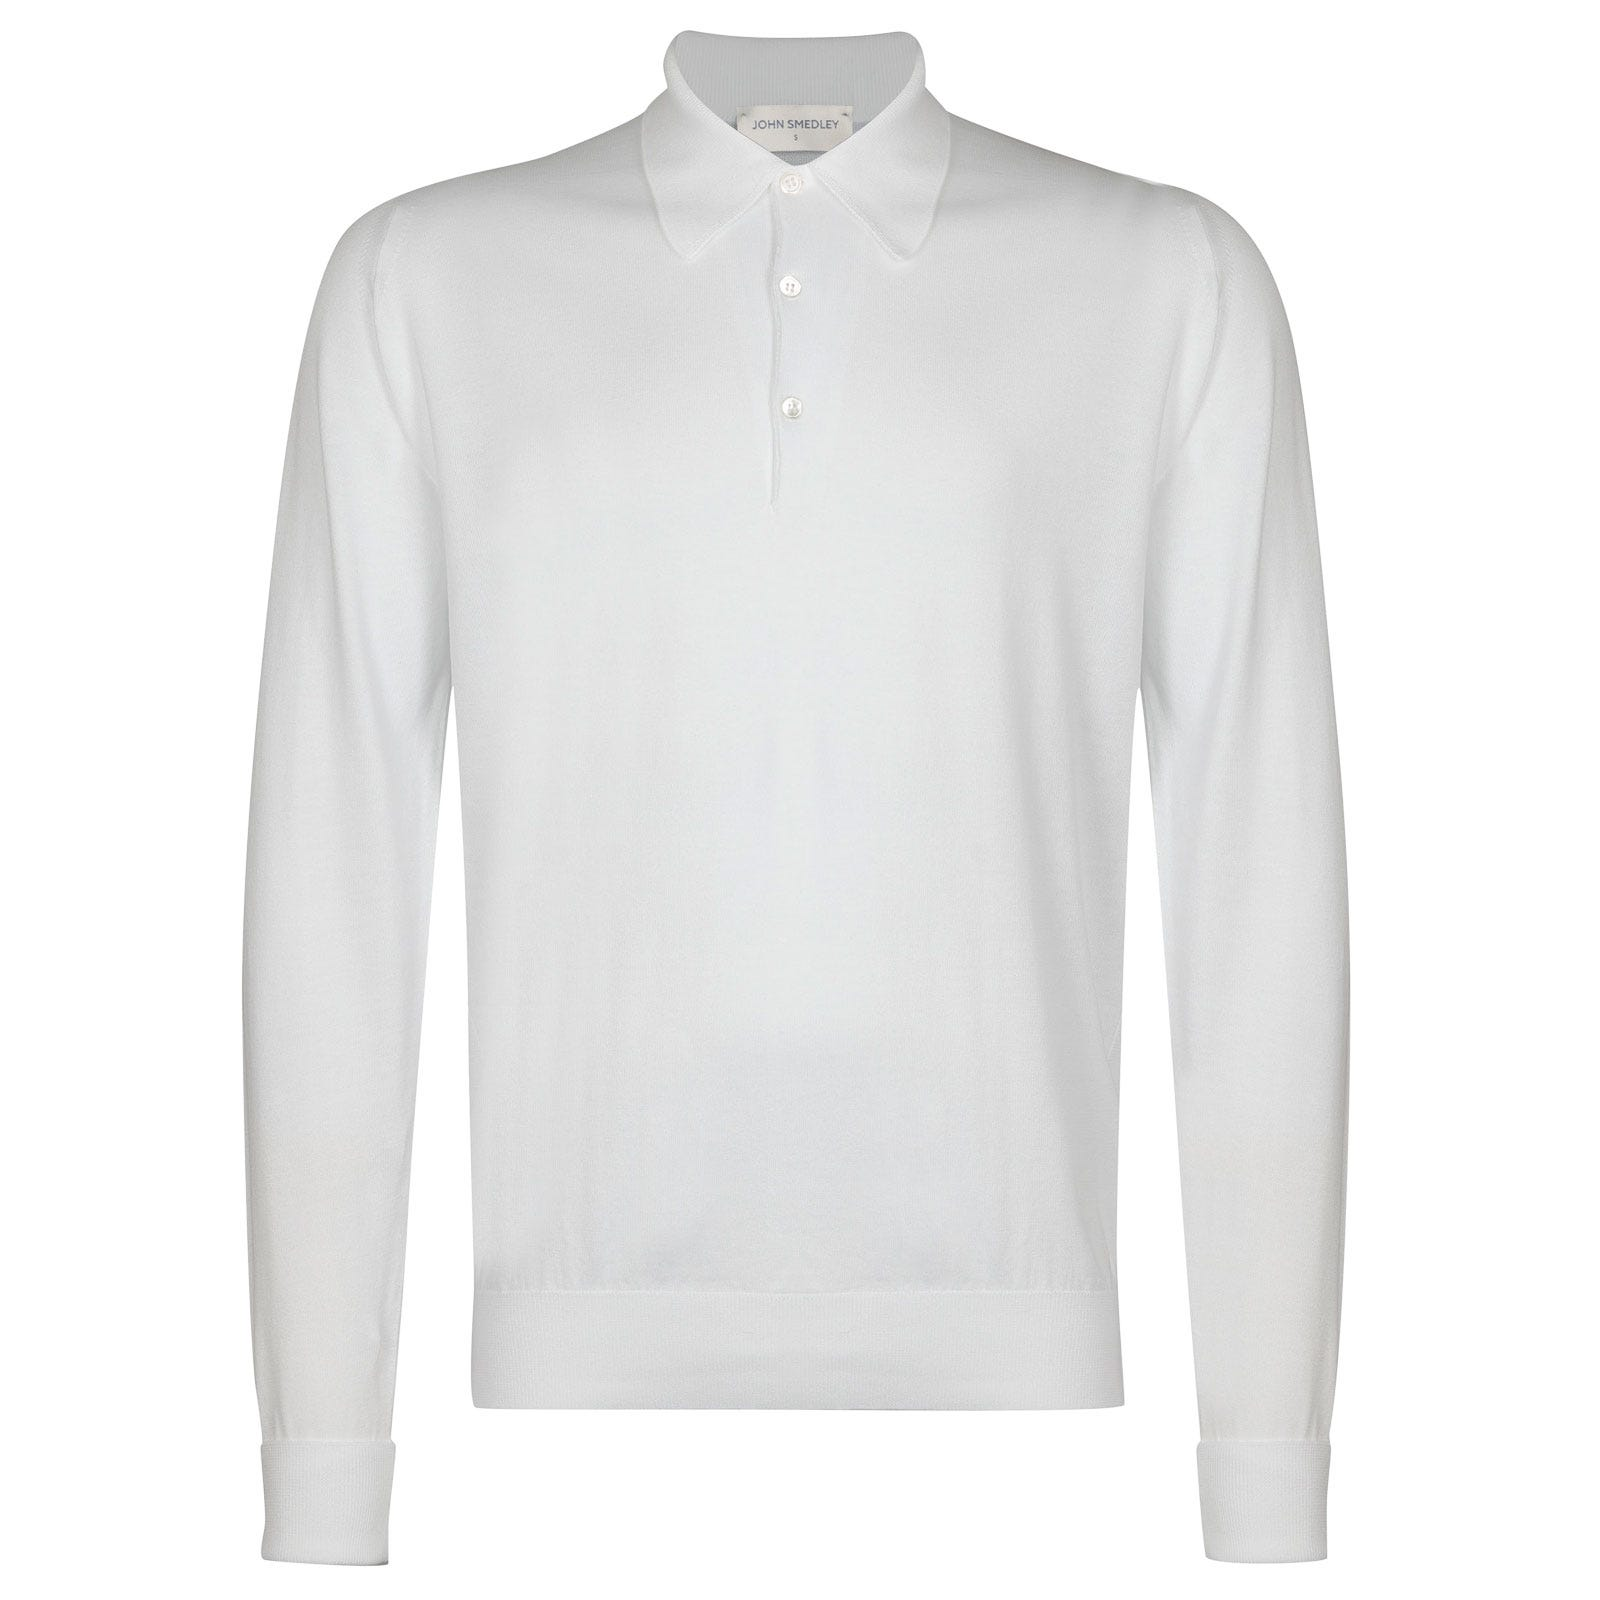 John Smedley finchley Sea Island Cotton Shirt in White-XL